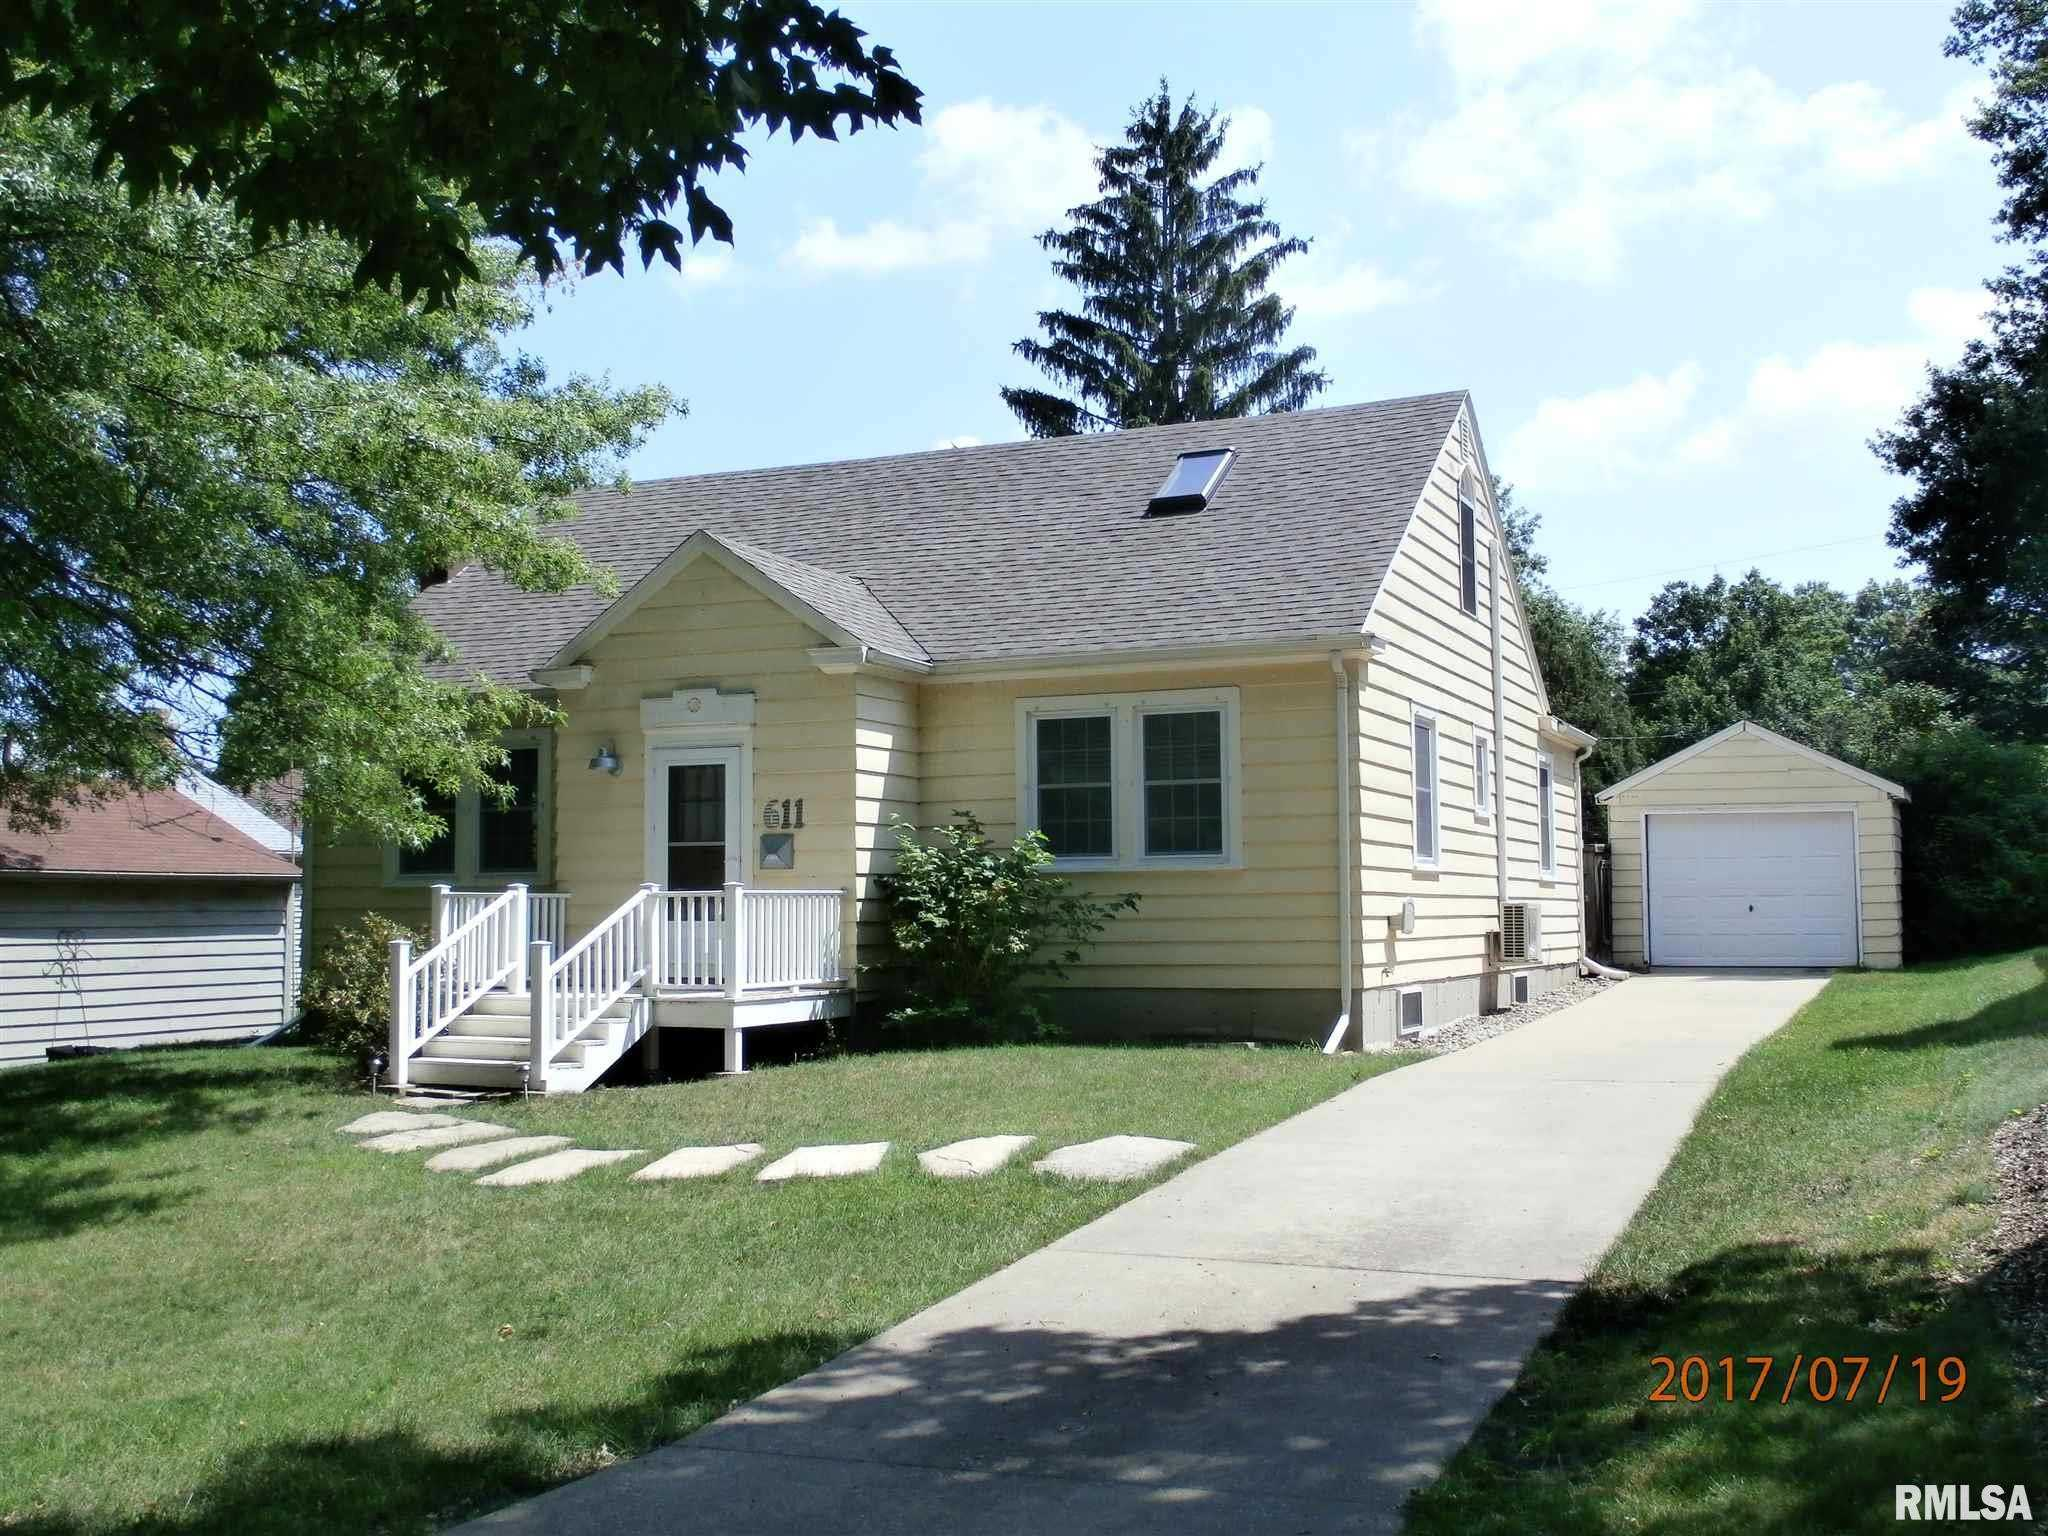 $139,900 - 3Br/2Ba -  for Sale in Compton Park, Macomb